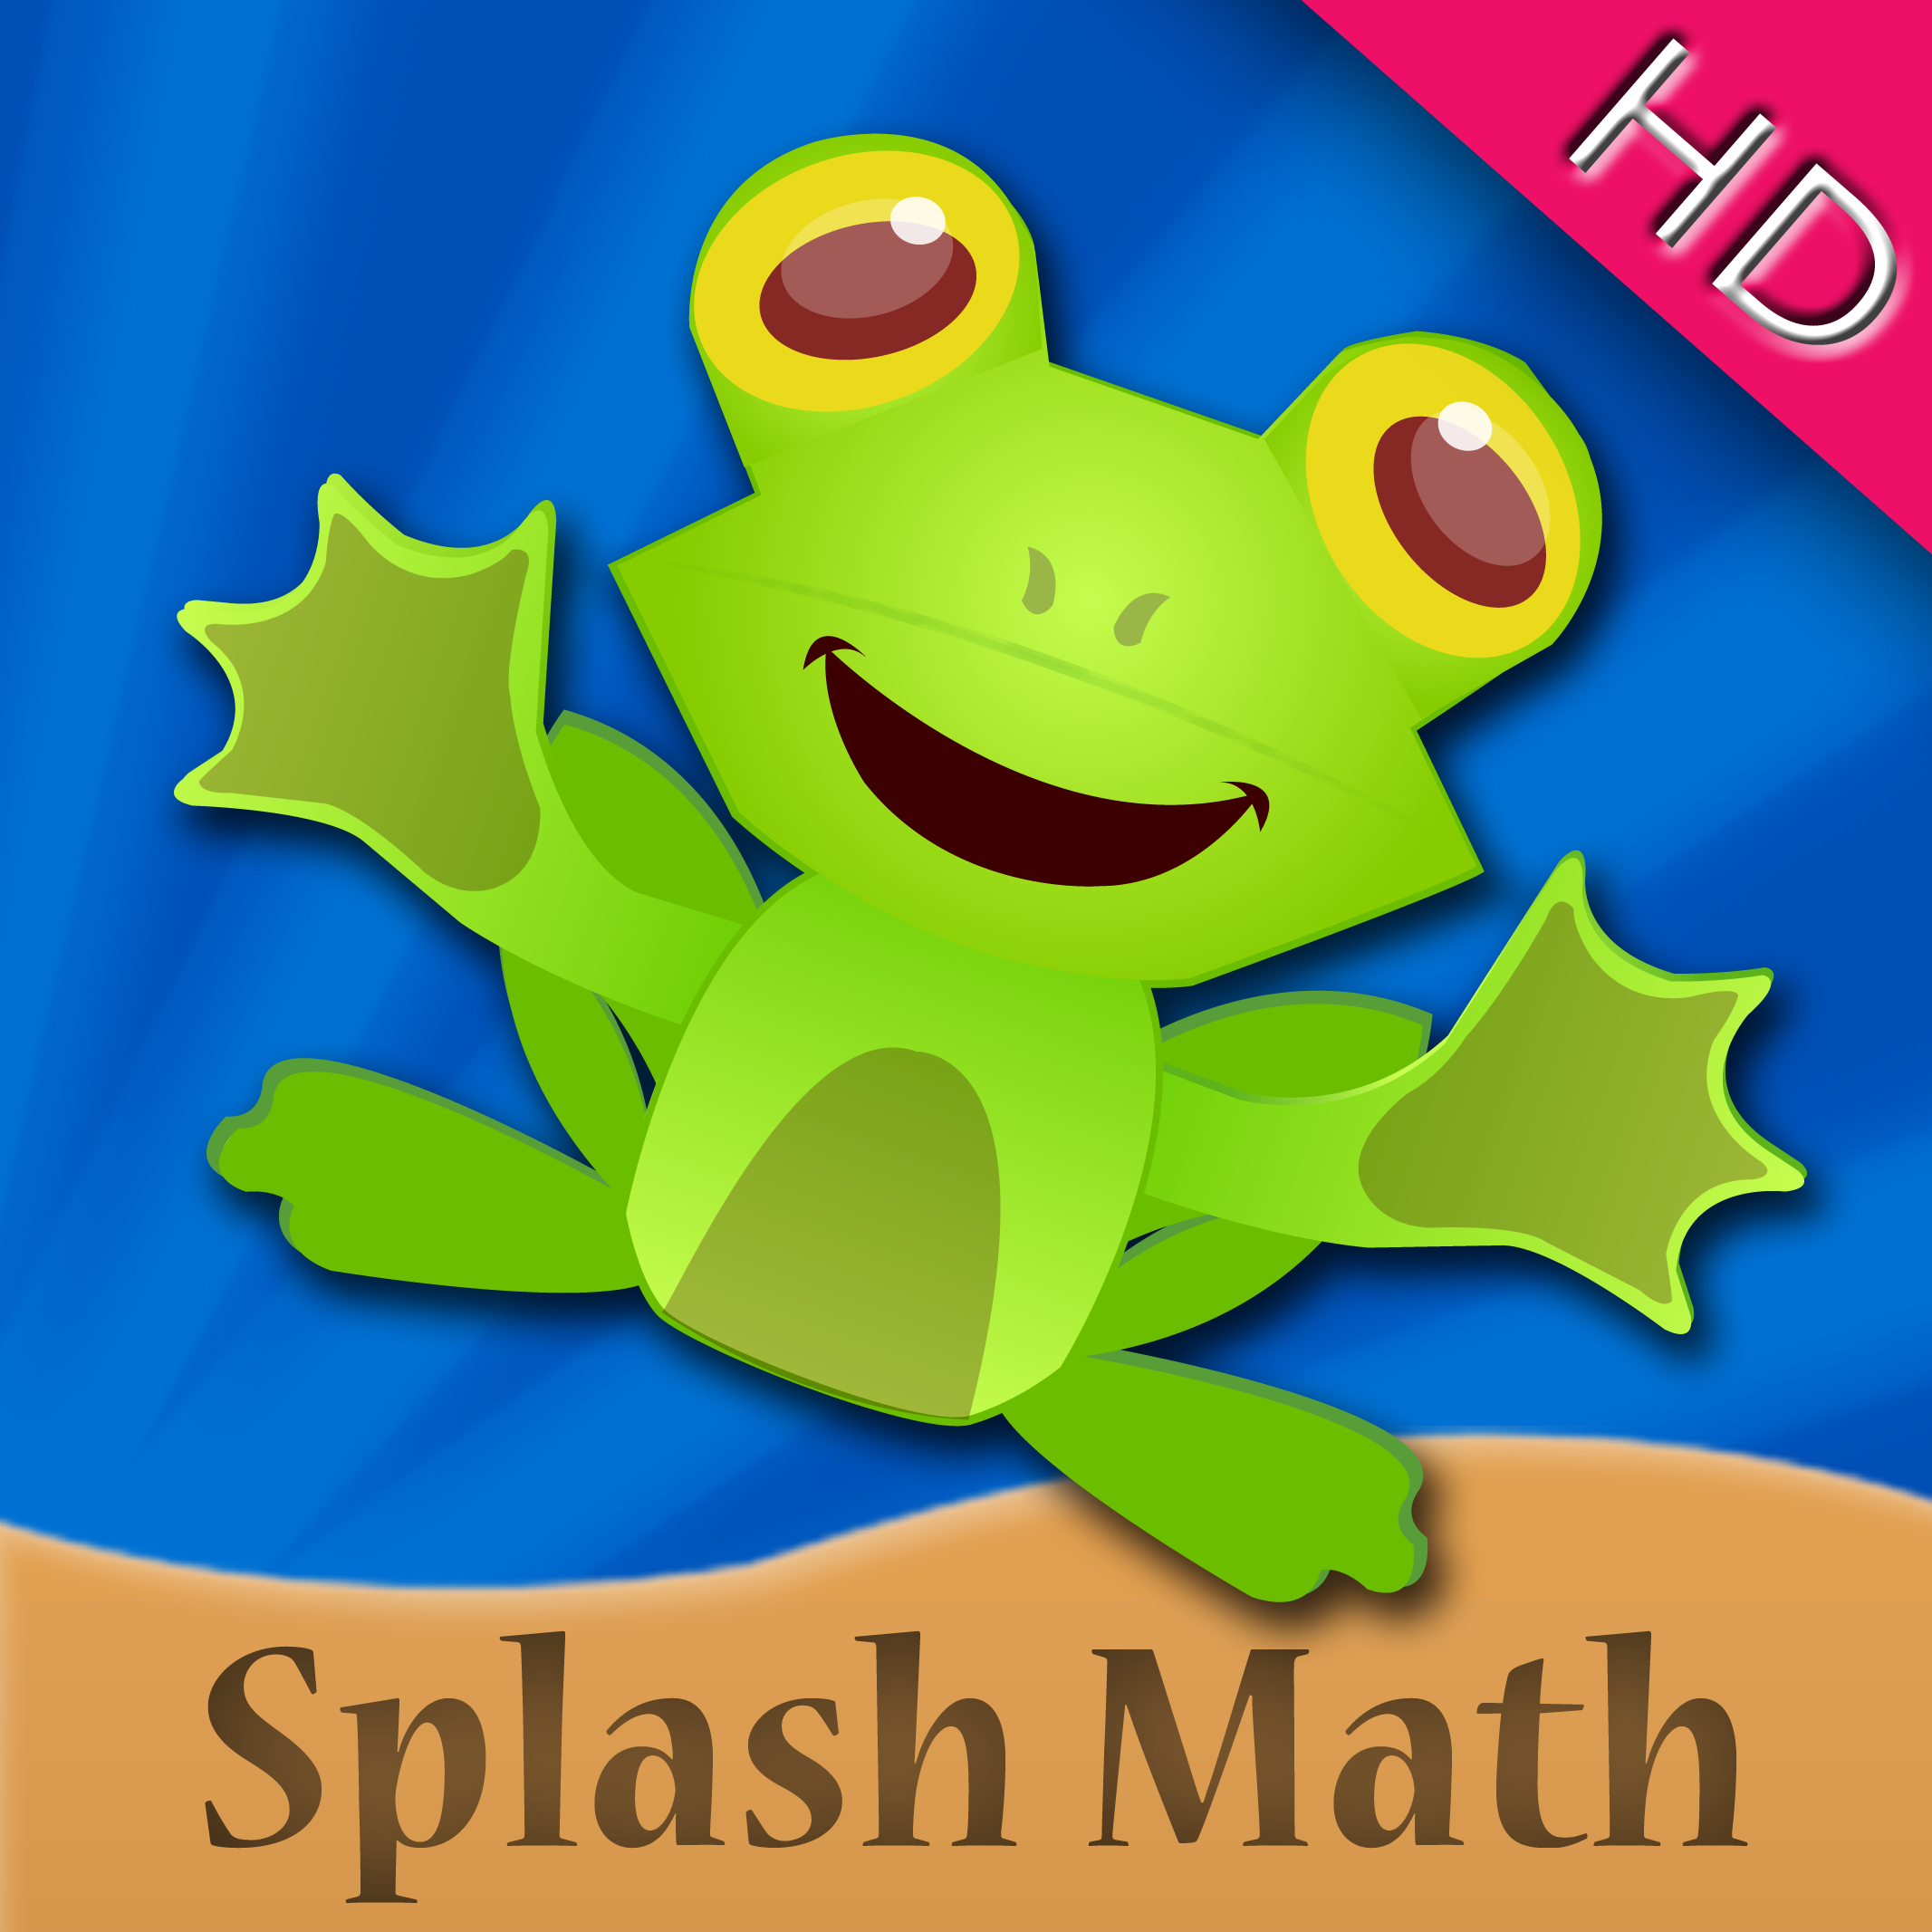 Splash Math is a helpful educational app.